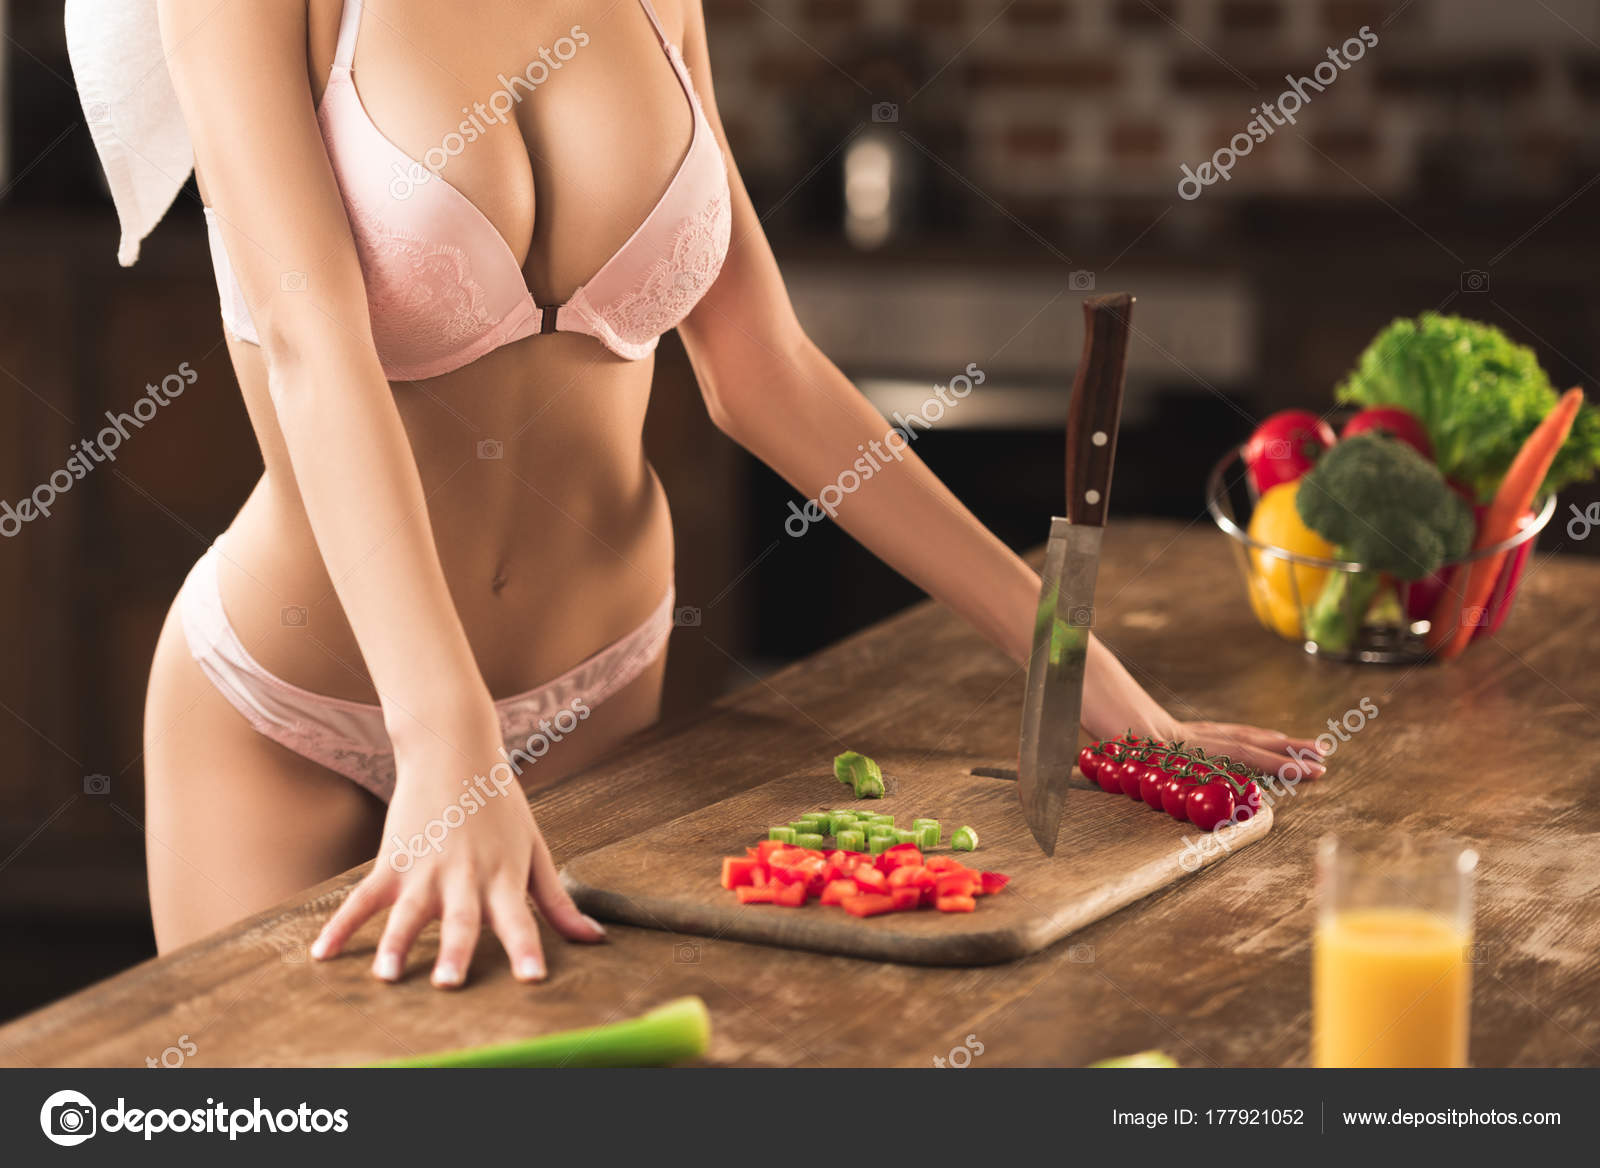 Sexy cooking in lingerie all clear